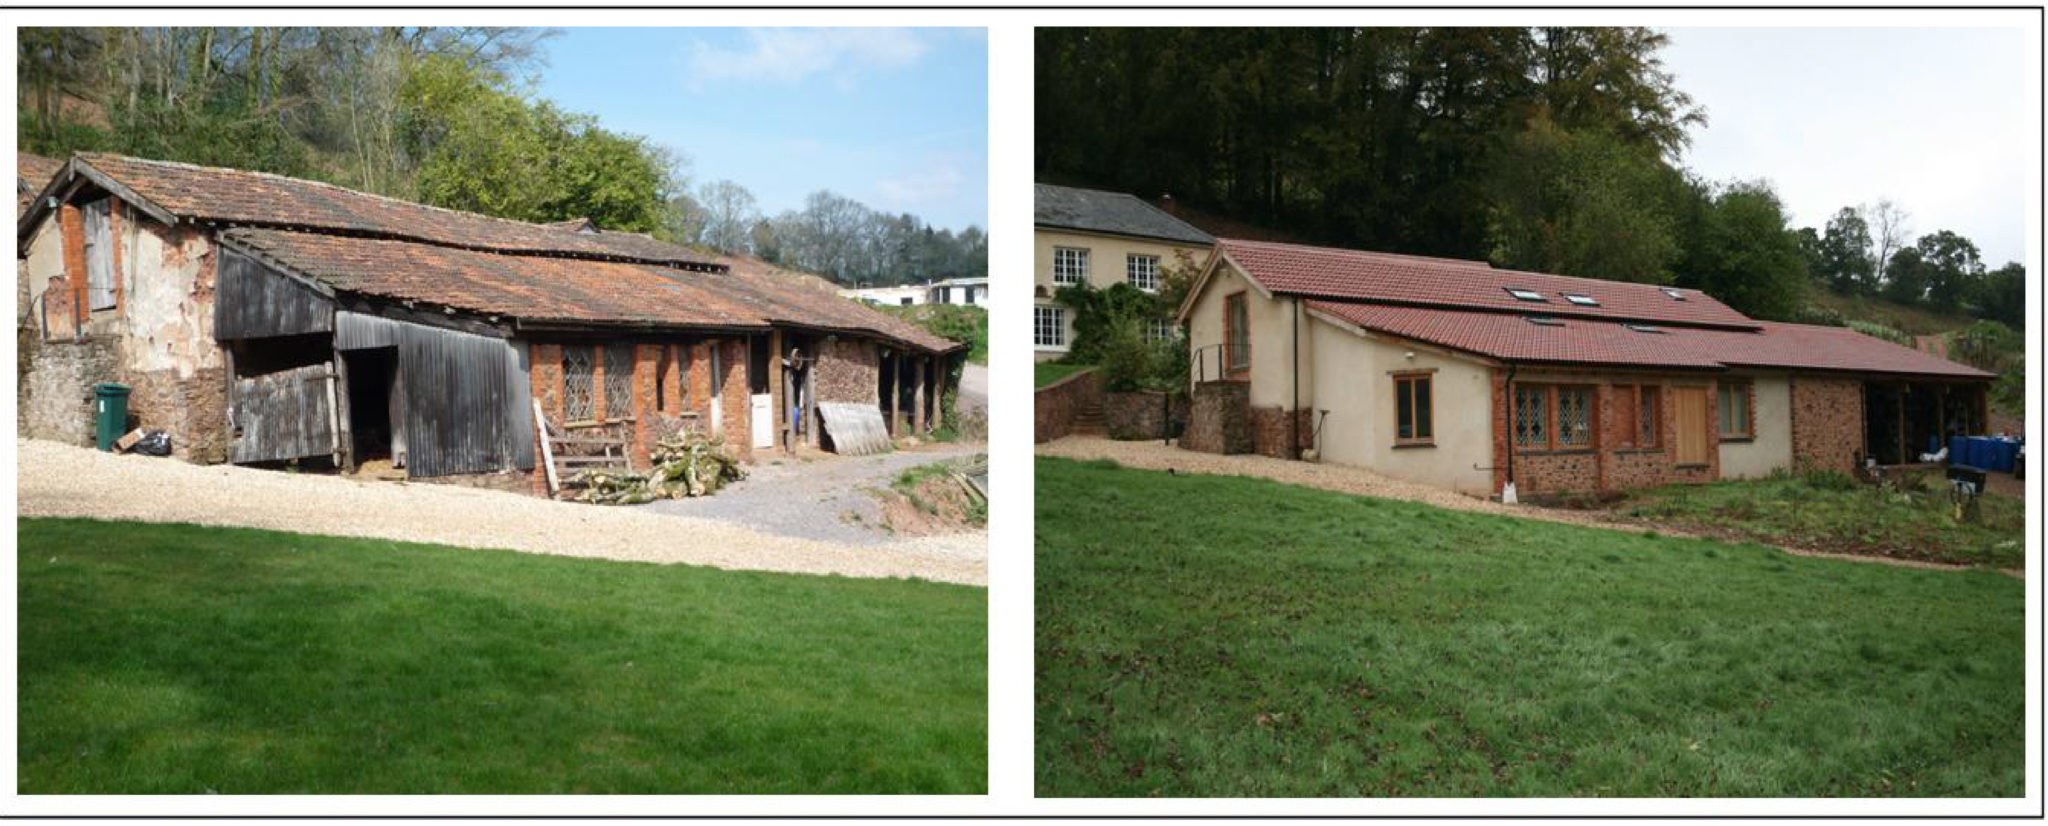 Planning and Listed Building appeals for the conversion of barns adjacent to a Listed Building.